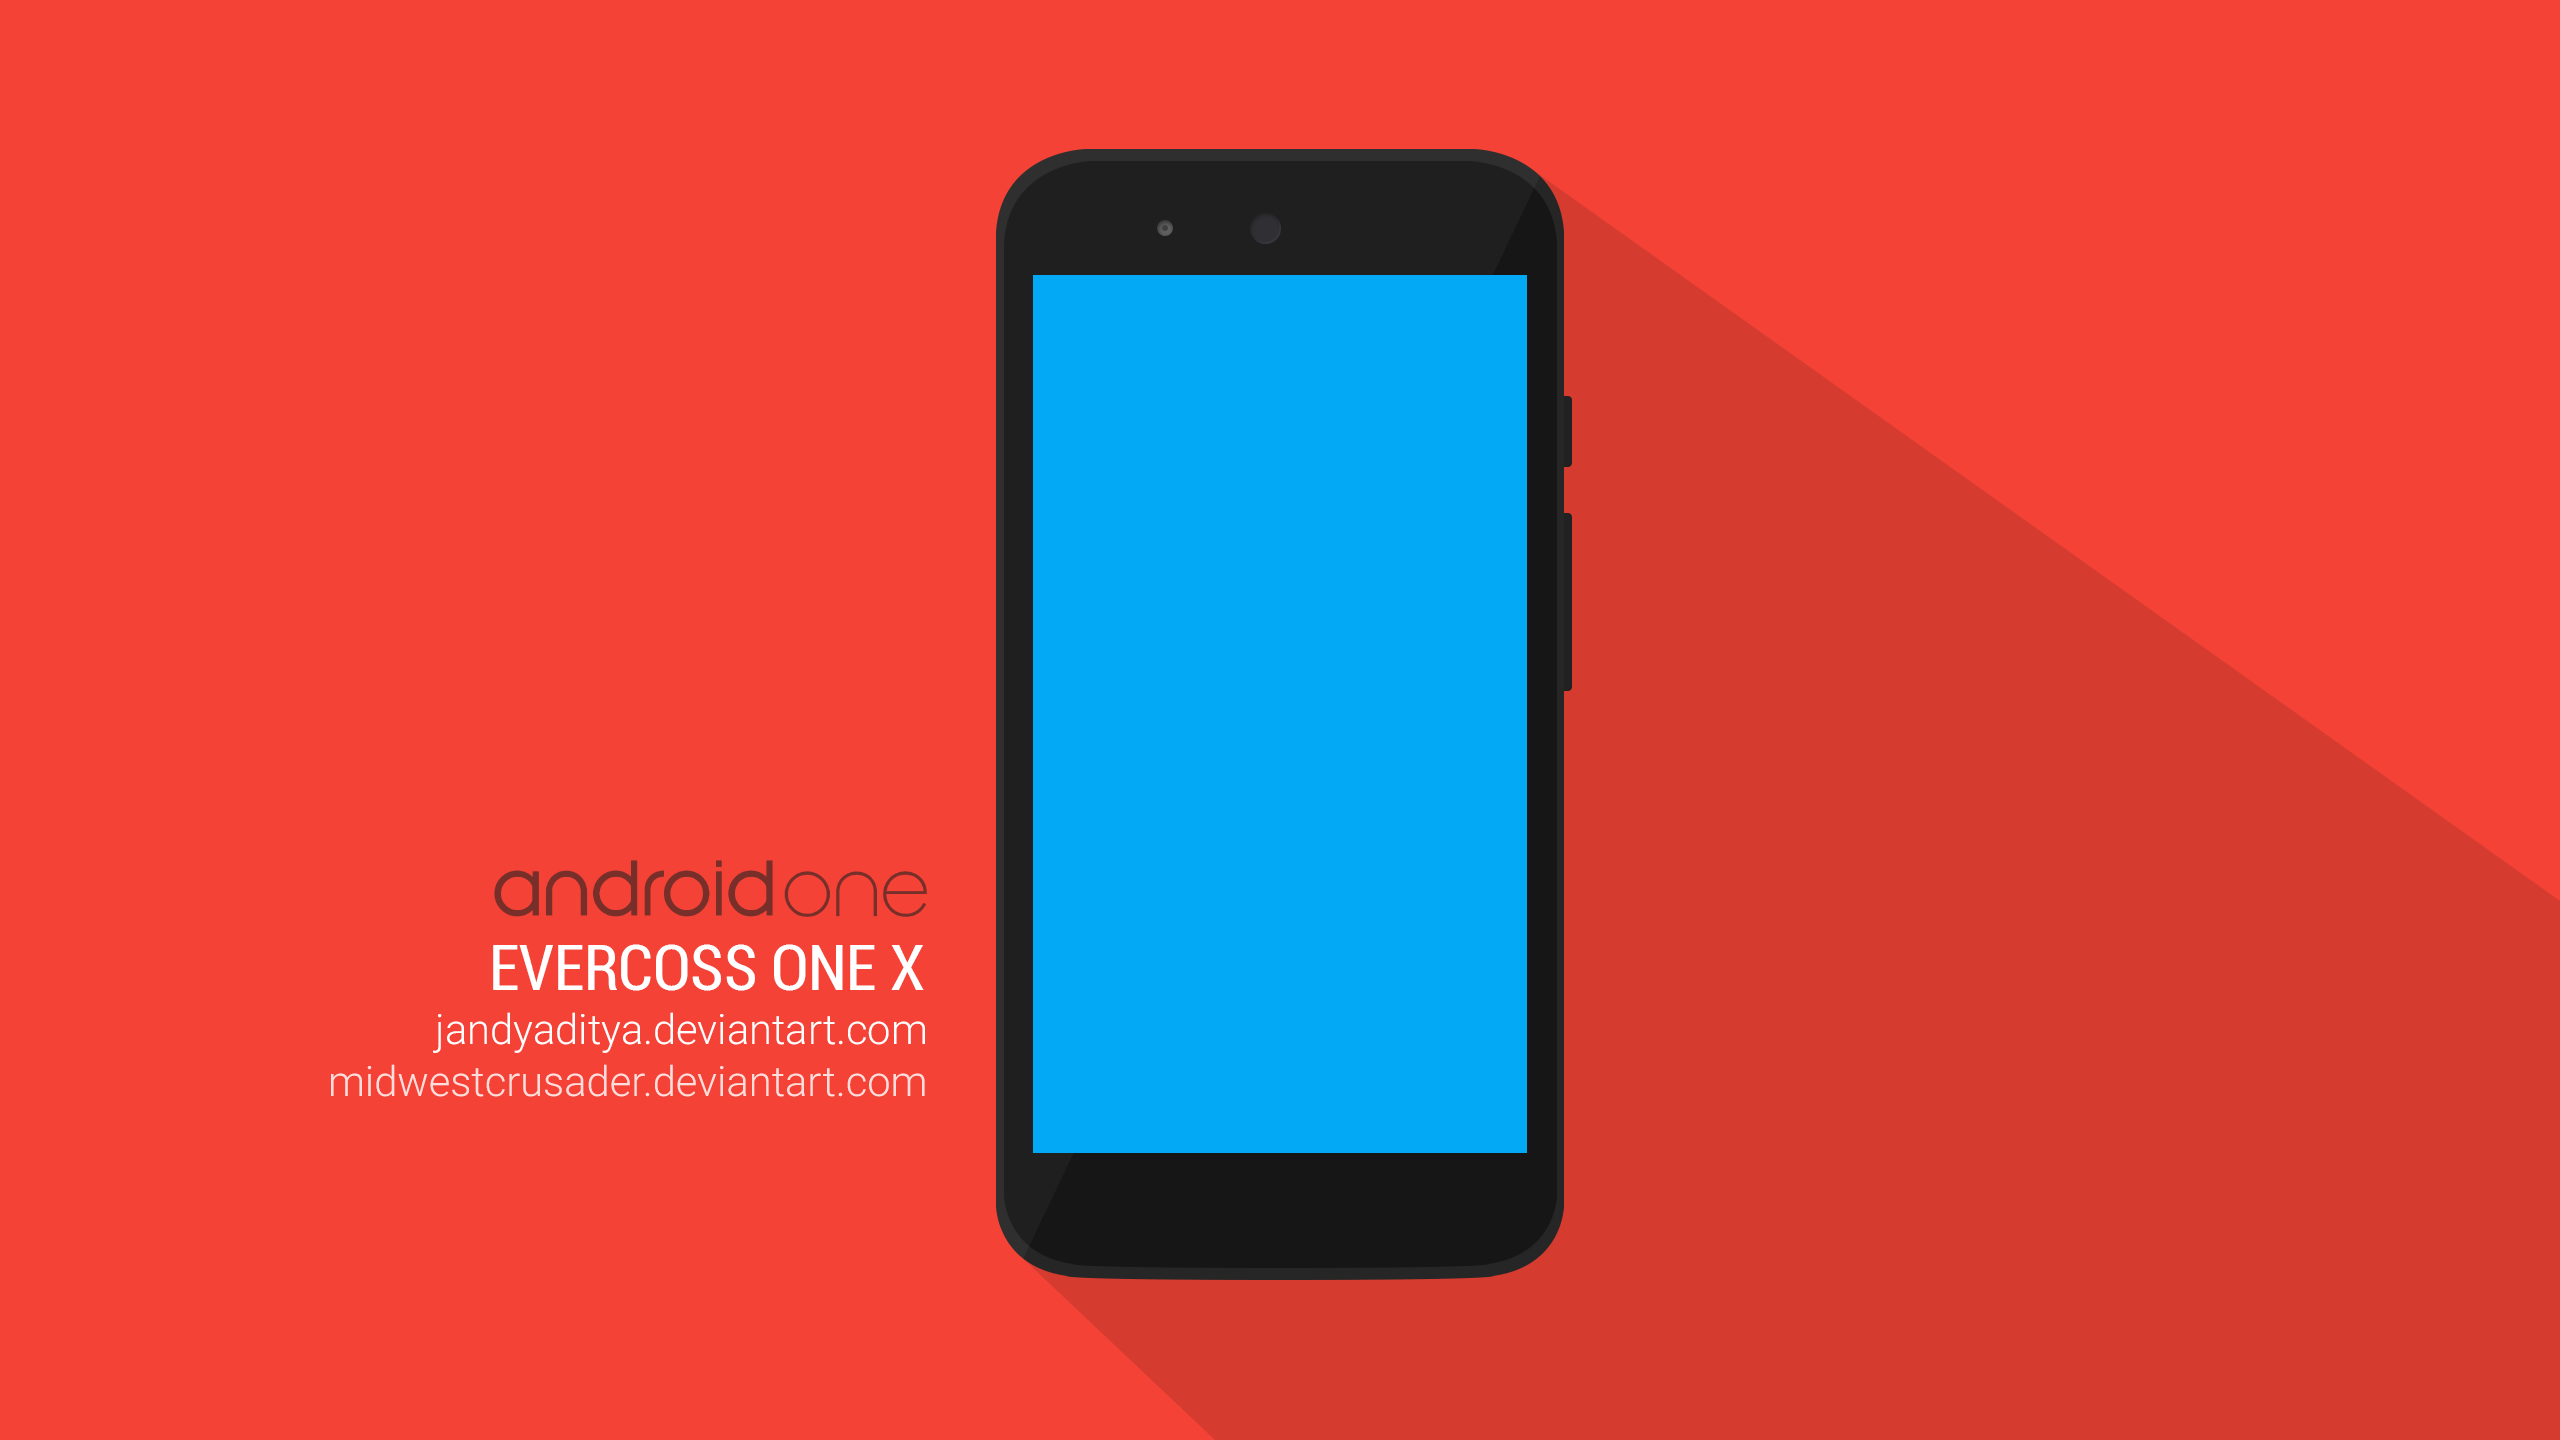 android one evercoss one x psd mockup v2 by jandyaditya